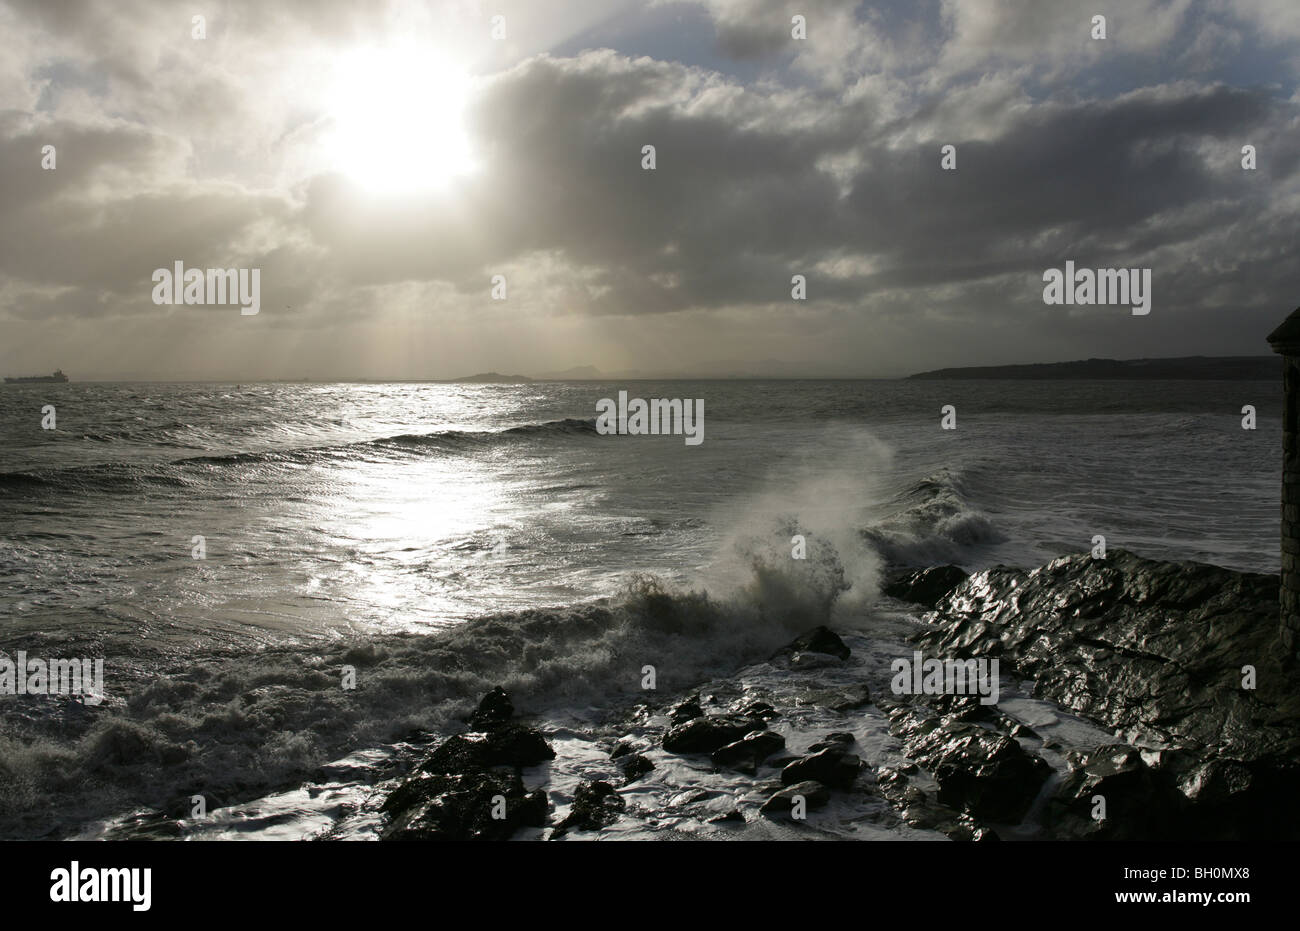 Dramatic skies and waves breaking on rocks at Ravenscraig Park near kirkcaldy Fife - Stock Image